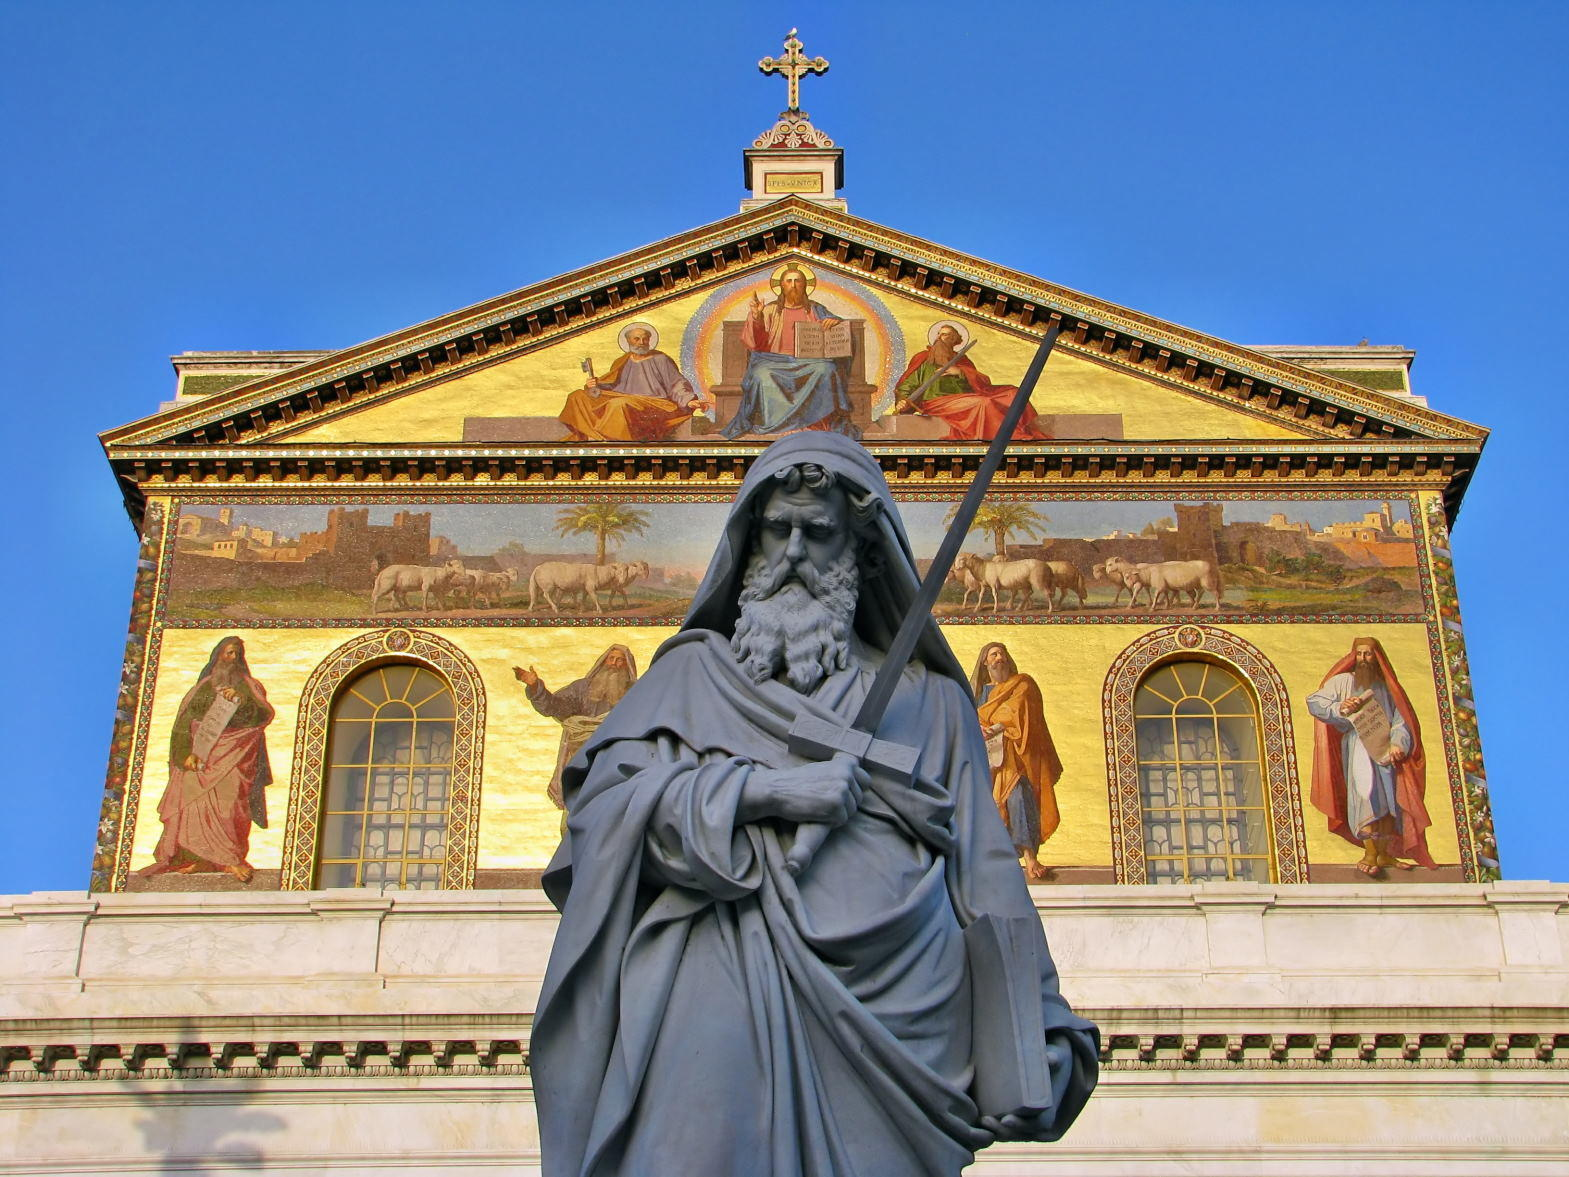 Statue of St. Paul holding a sword in Basilica of Saint Paul outside the walls